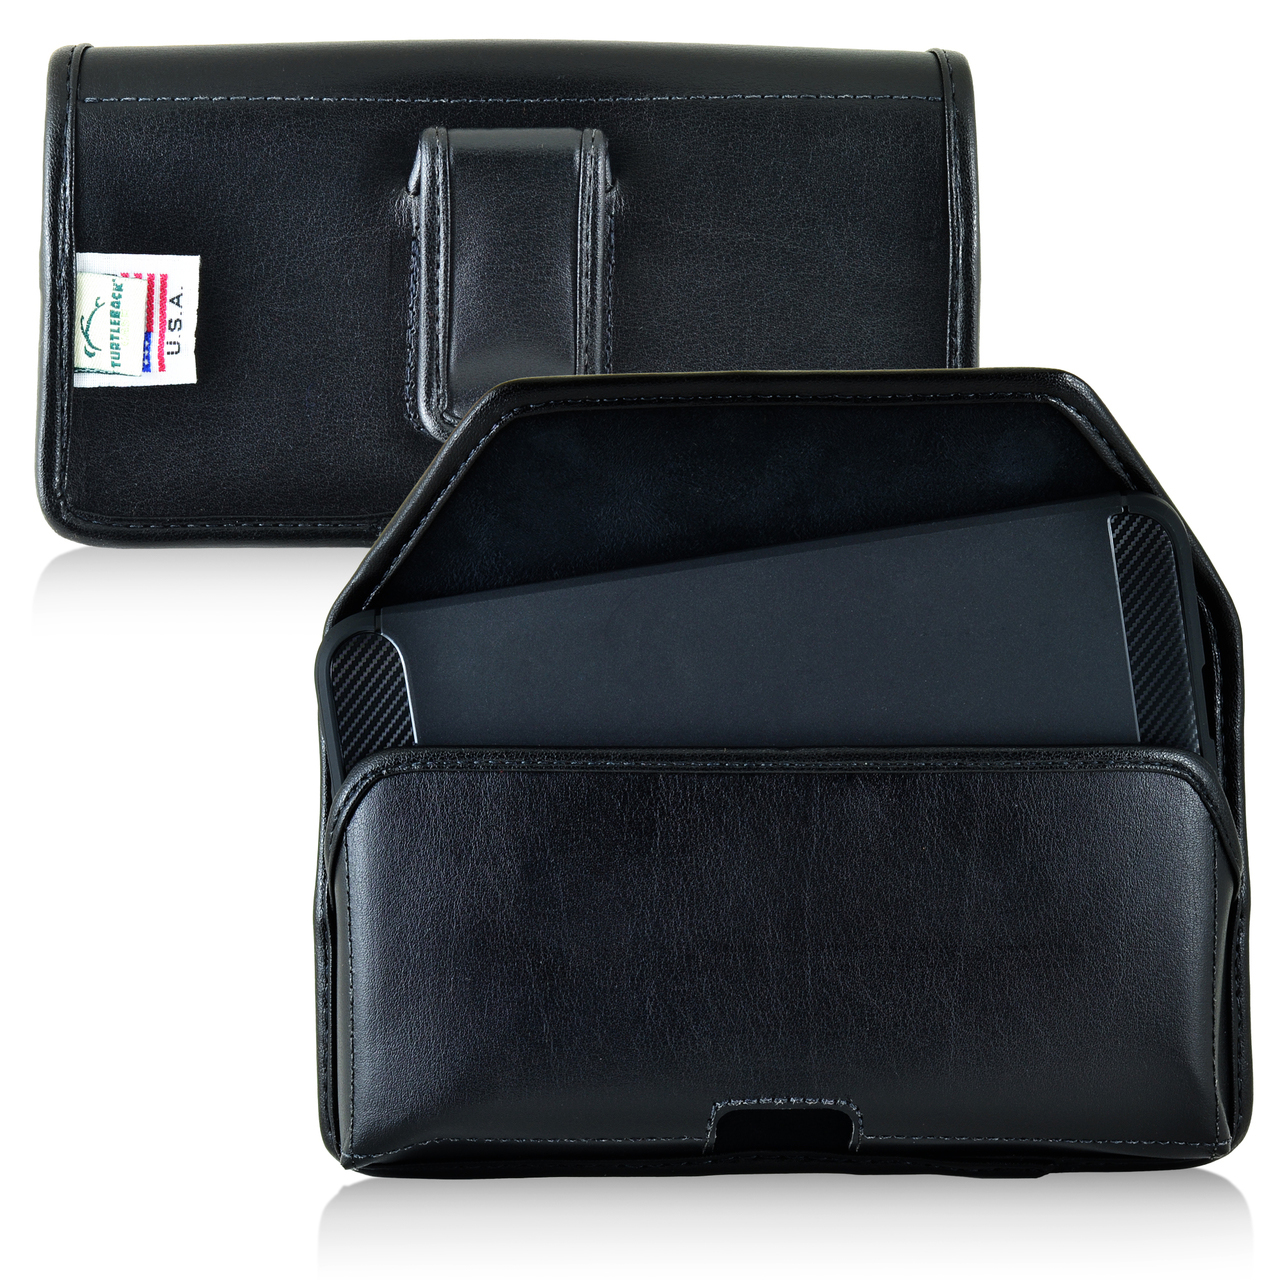 Huawei Google Nexus 6P Pouch, Turtleback [Black] Horizontal Real Leather Holster Pouch Case w/  Black Leather Belt Clip - Made in the USA!